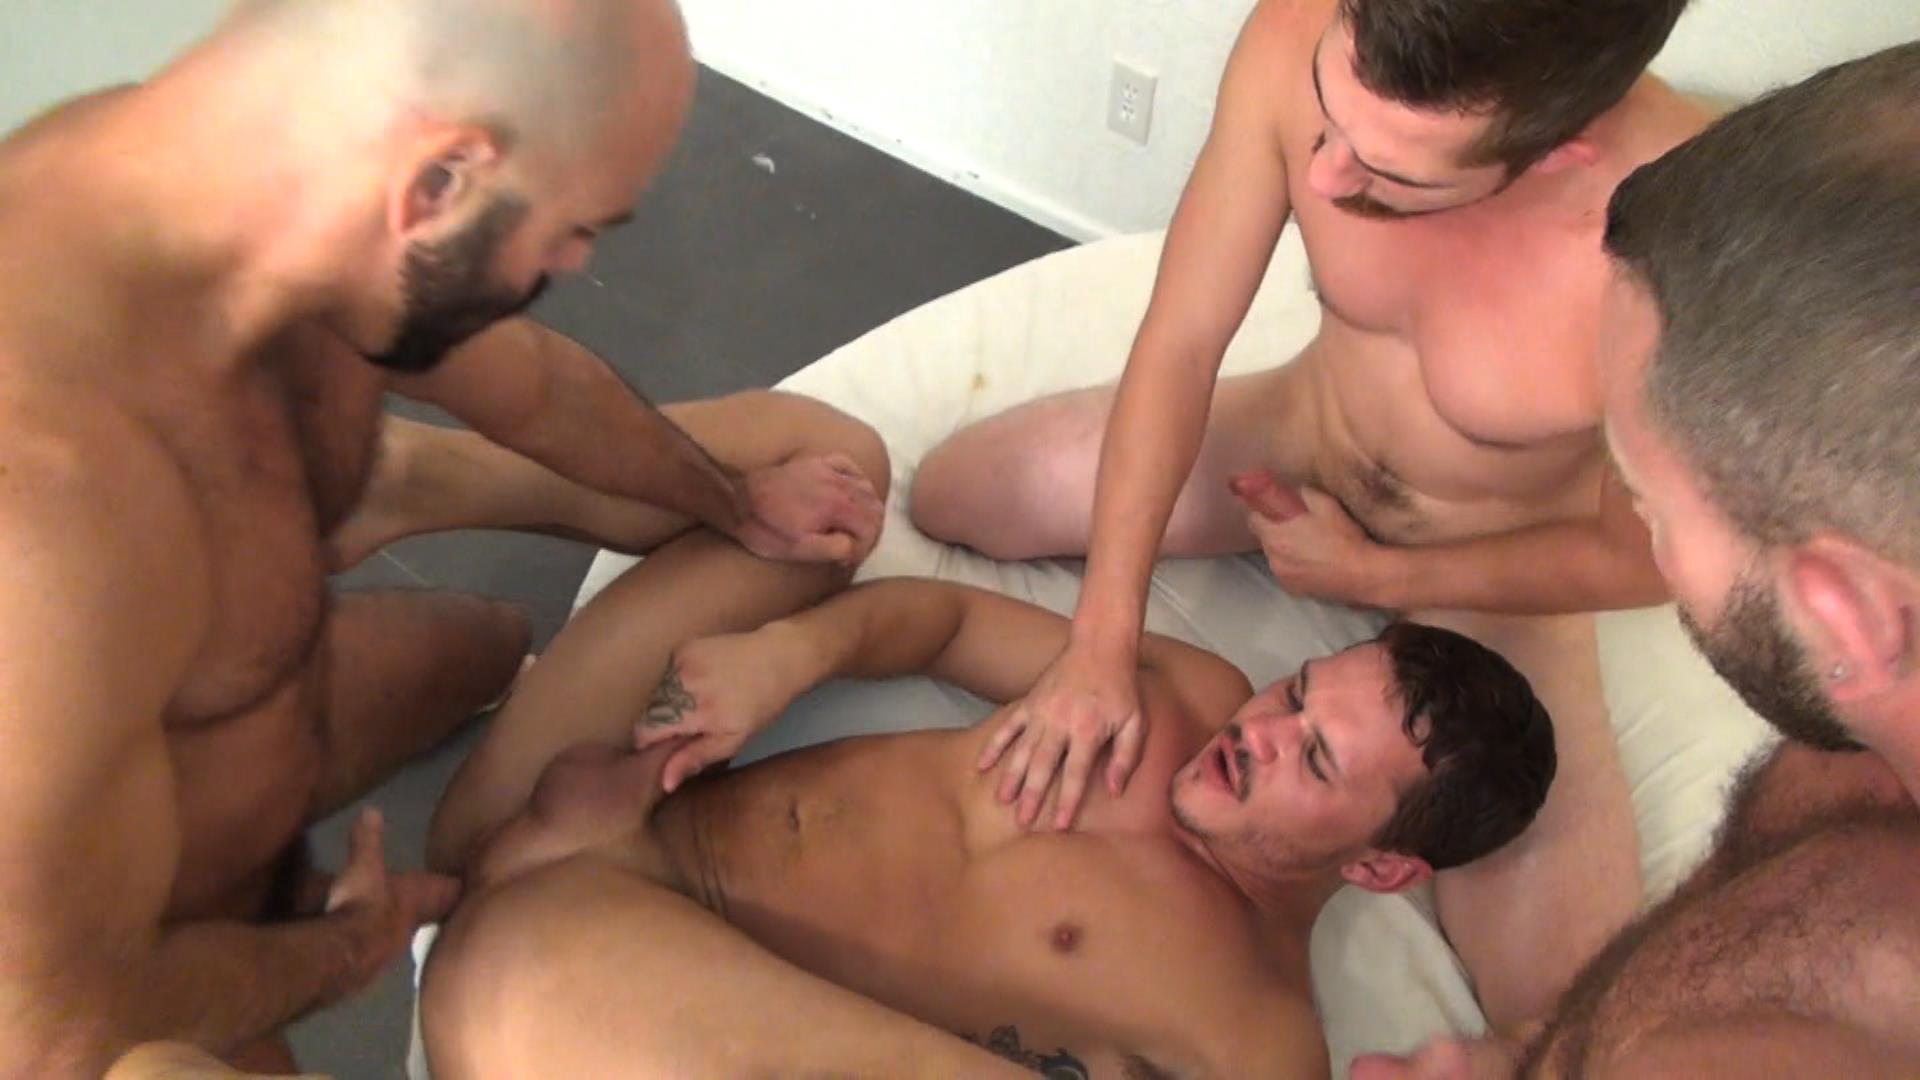 Raw Fuck Club Dayton OConnor Tate Ryder Shay Michaels Adam Russo Bareback Breeding Amateur Gay Porn 6 Tate Ryder Gets Three Hairy Muscle Daddy Bareback Cocks